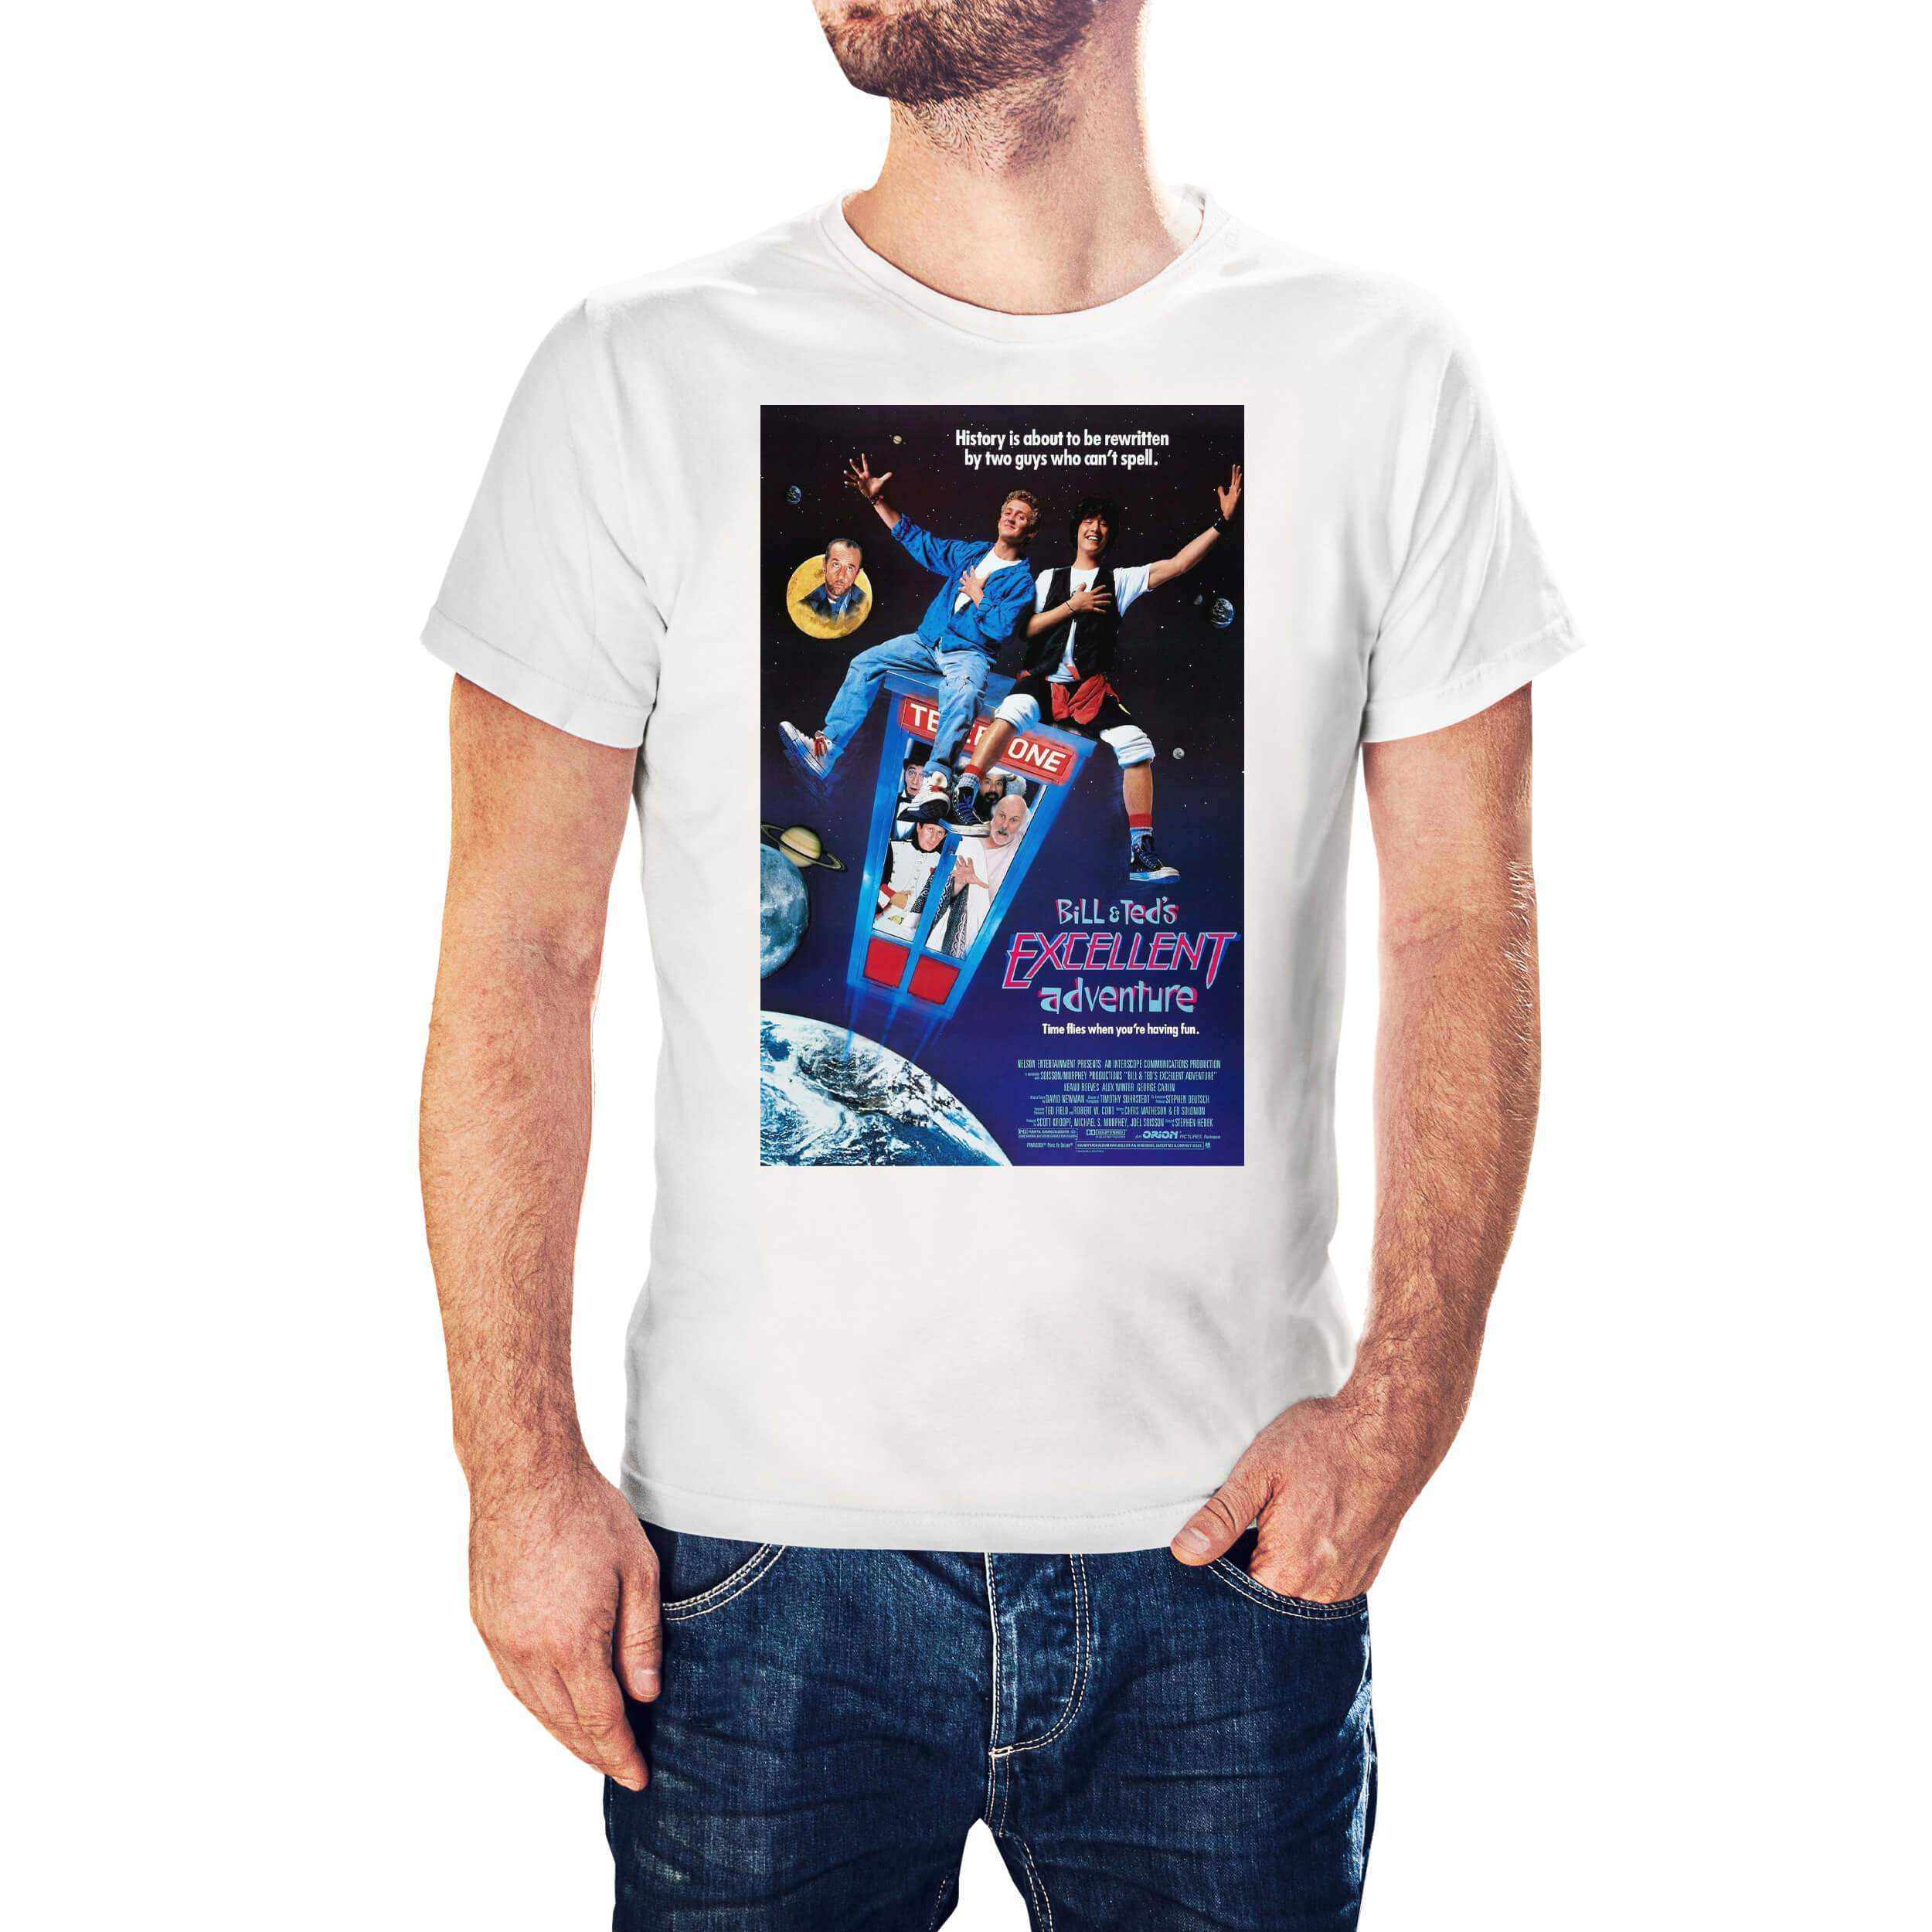 Bill & Ted's Excellent Adventure Movie Poster T-Shirt